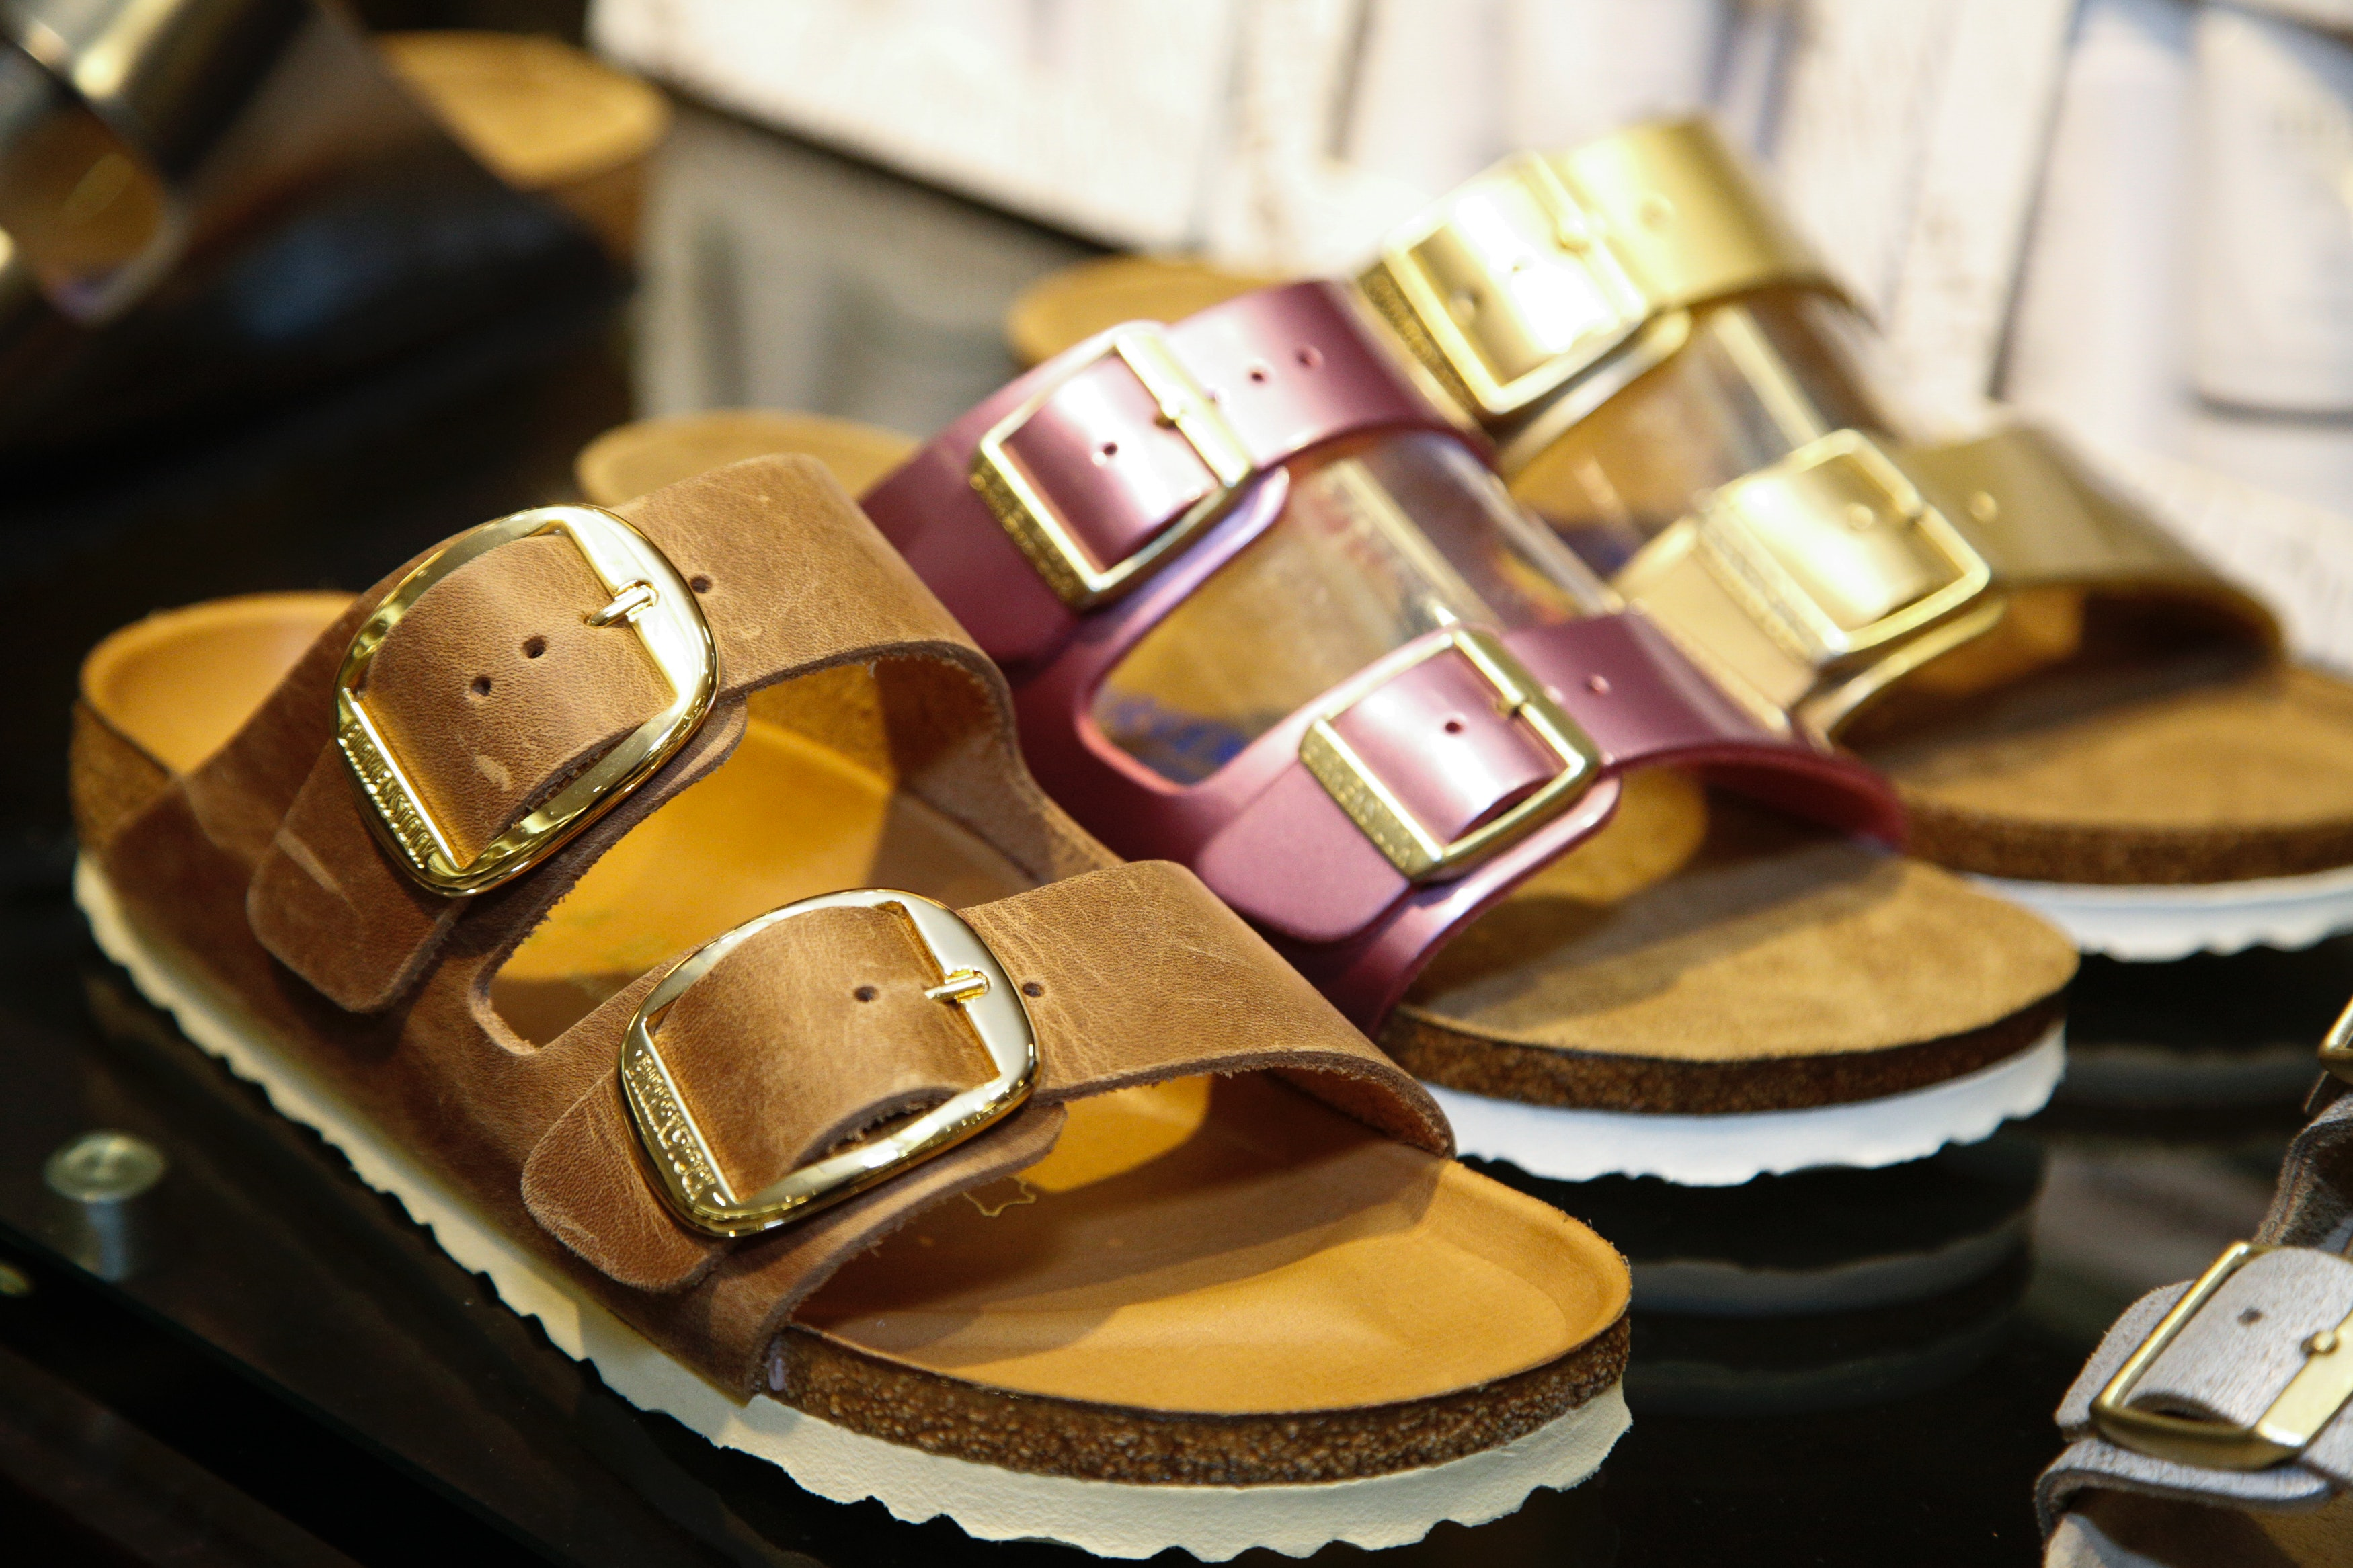 How to Style Your Birkenstocks Without Looking Like a